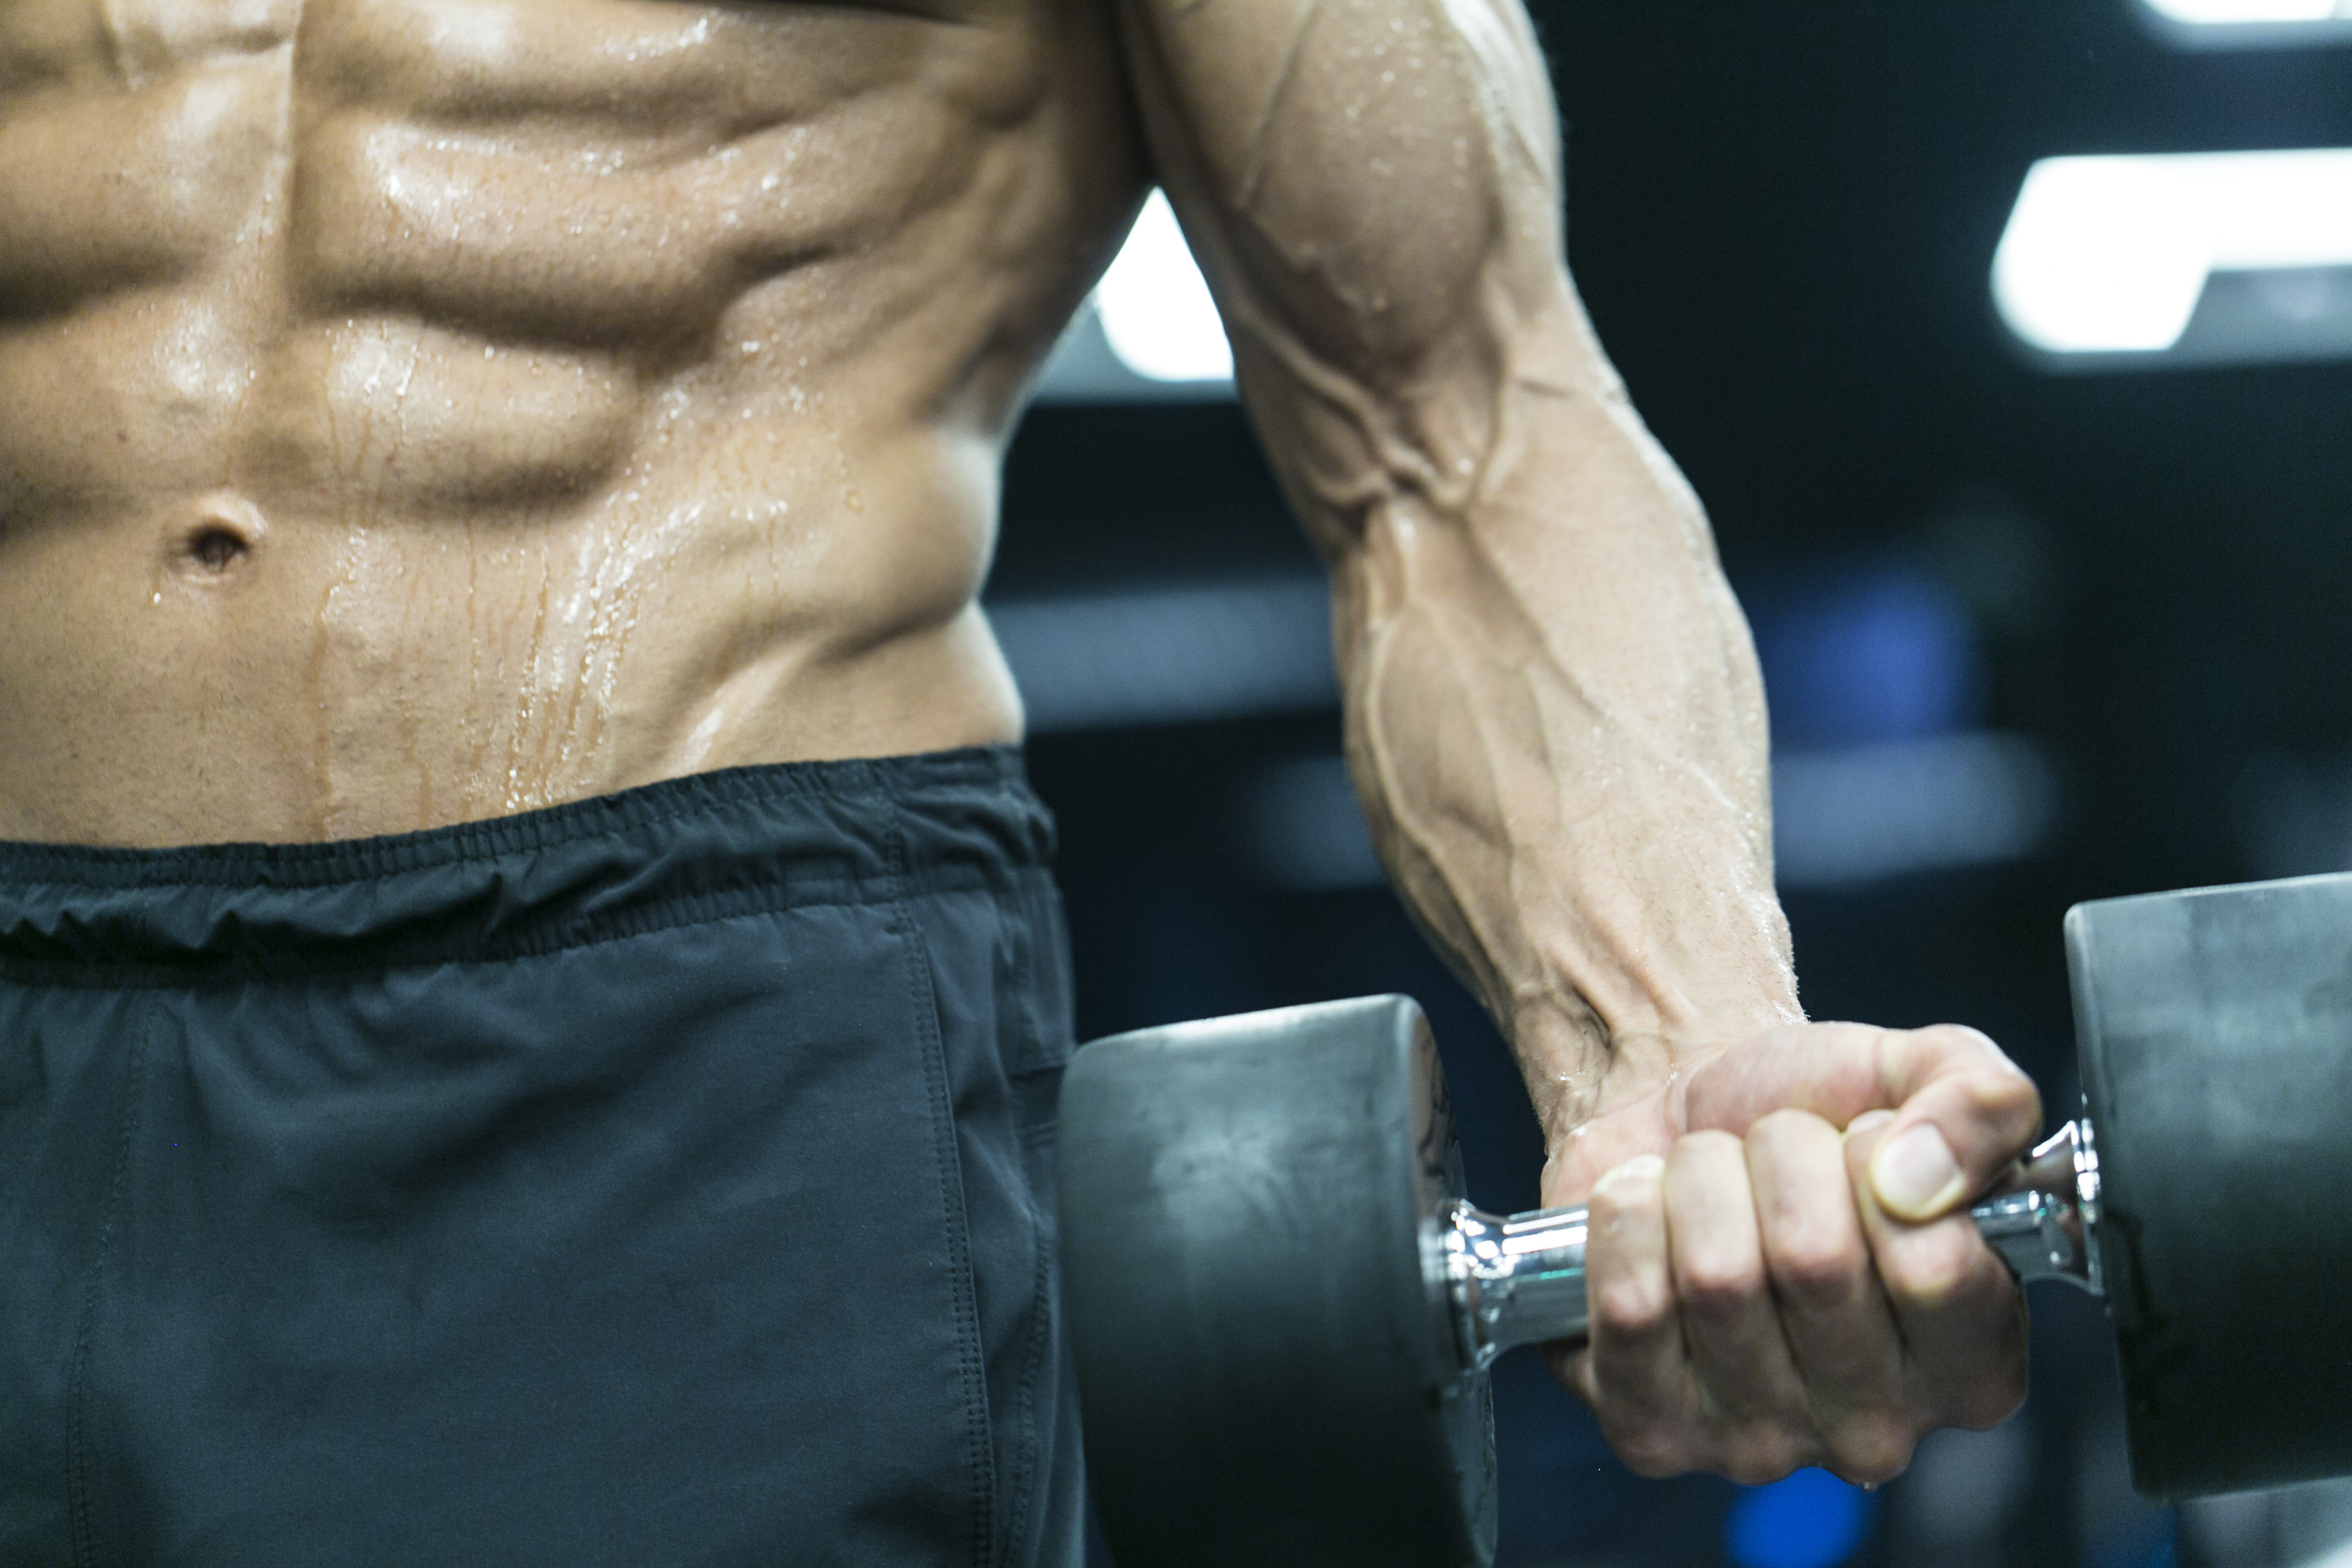 The secret to building serious muscle mass